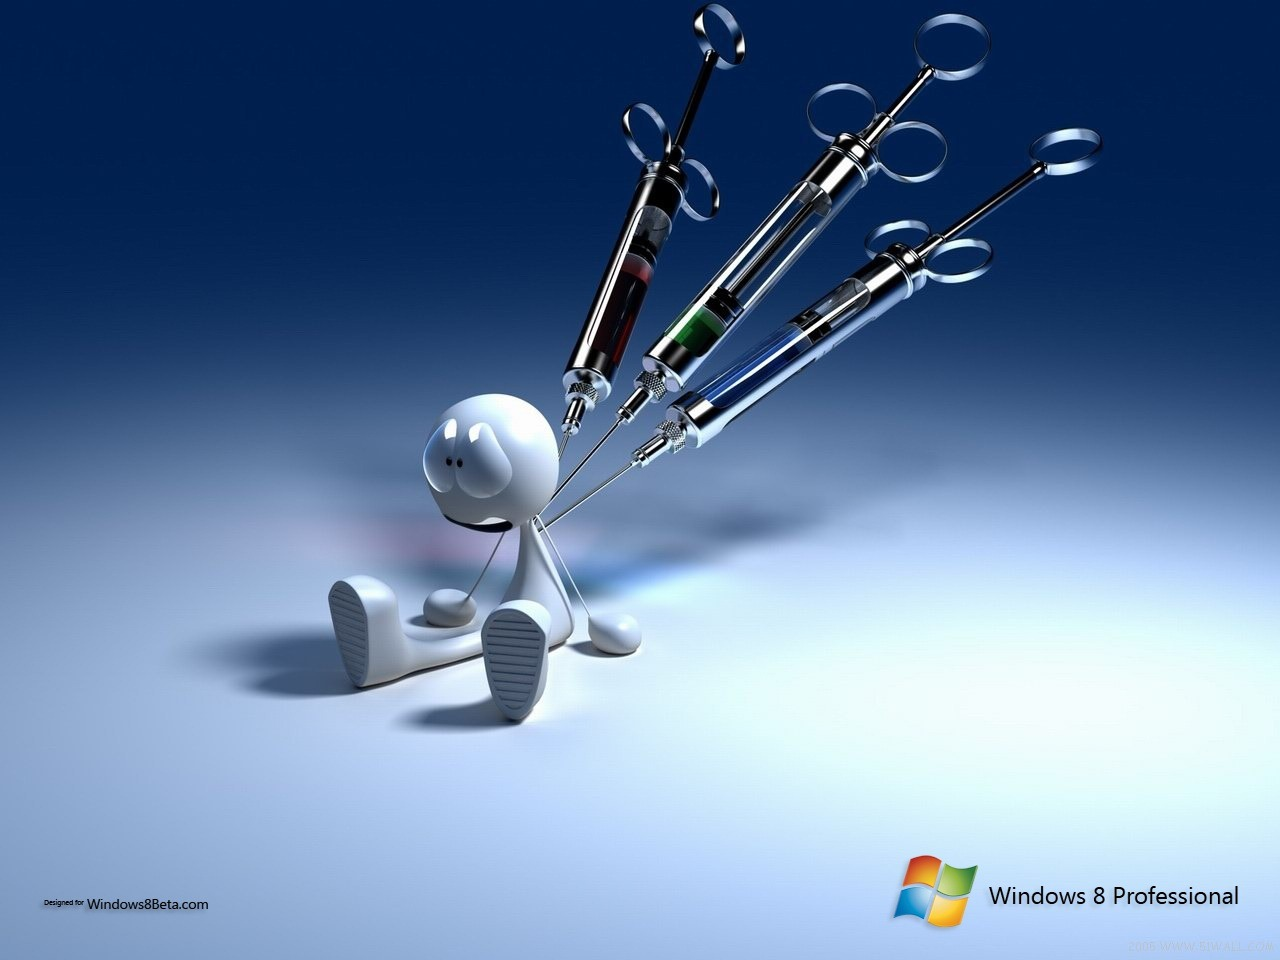 http://1.bp.blogspot.com/-5QAJN7NPhm8/ULIhot3oZDI/AAAAAAAAKUU/j_HhiAMpWd0/s1600/windows-8-wallpaper-21.jpg